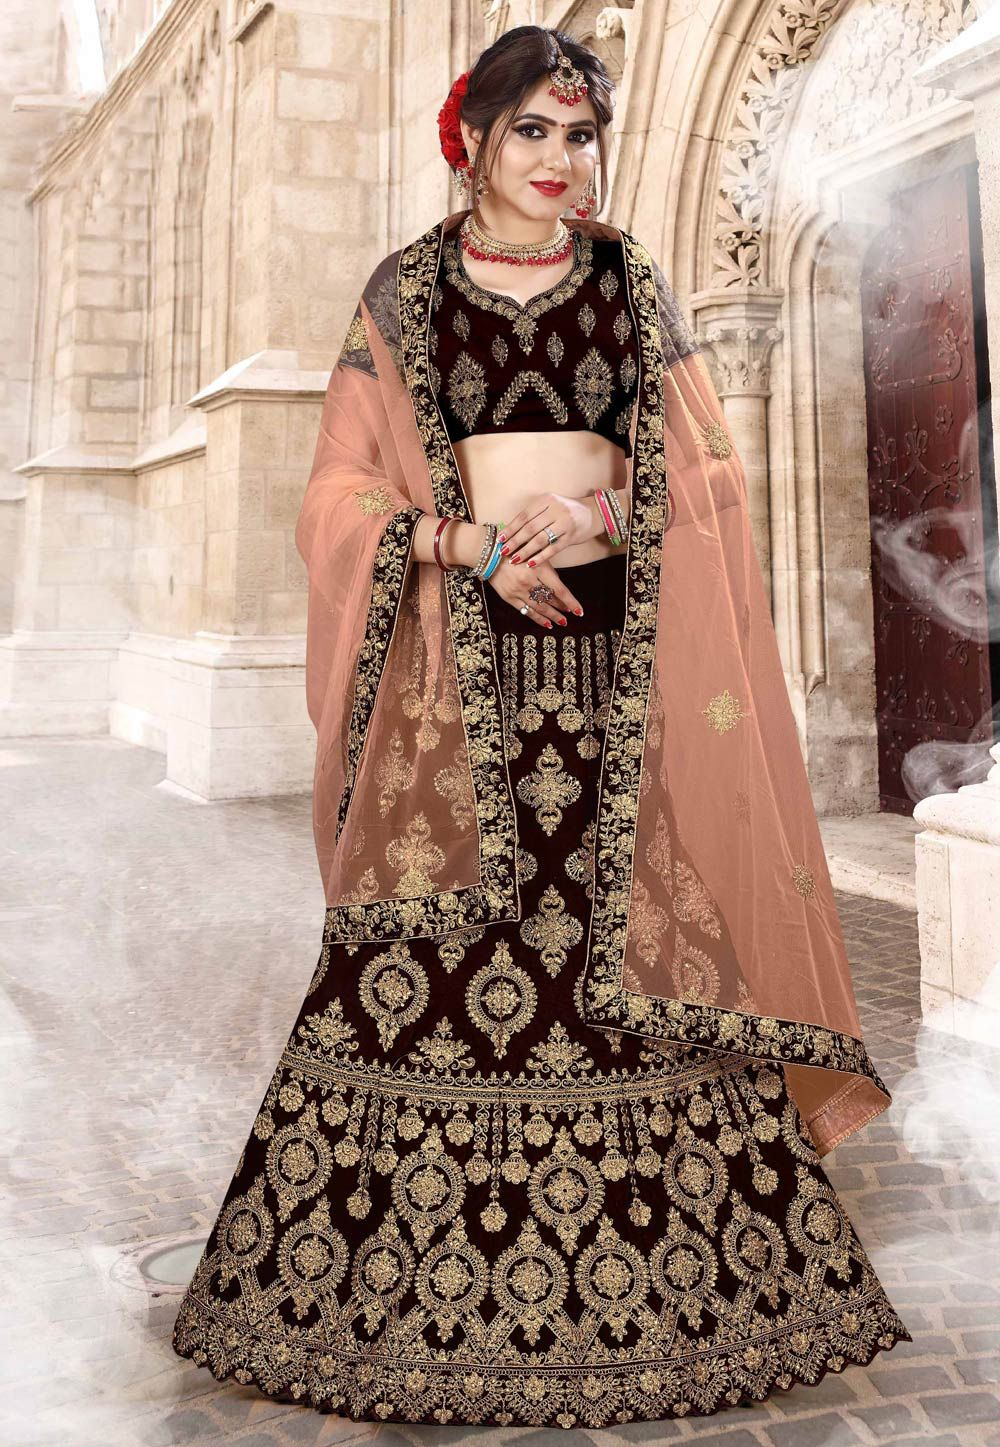 19f1a382f1 Buy Brown Velvet Embroidered Lehenga Choli 154891 online at best price from  vast collection of Lehenga Choli and Chaniya Choli at Indianclothstore.com.